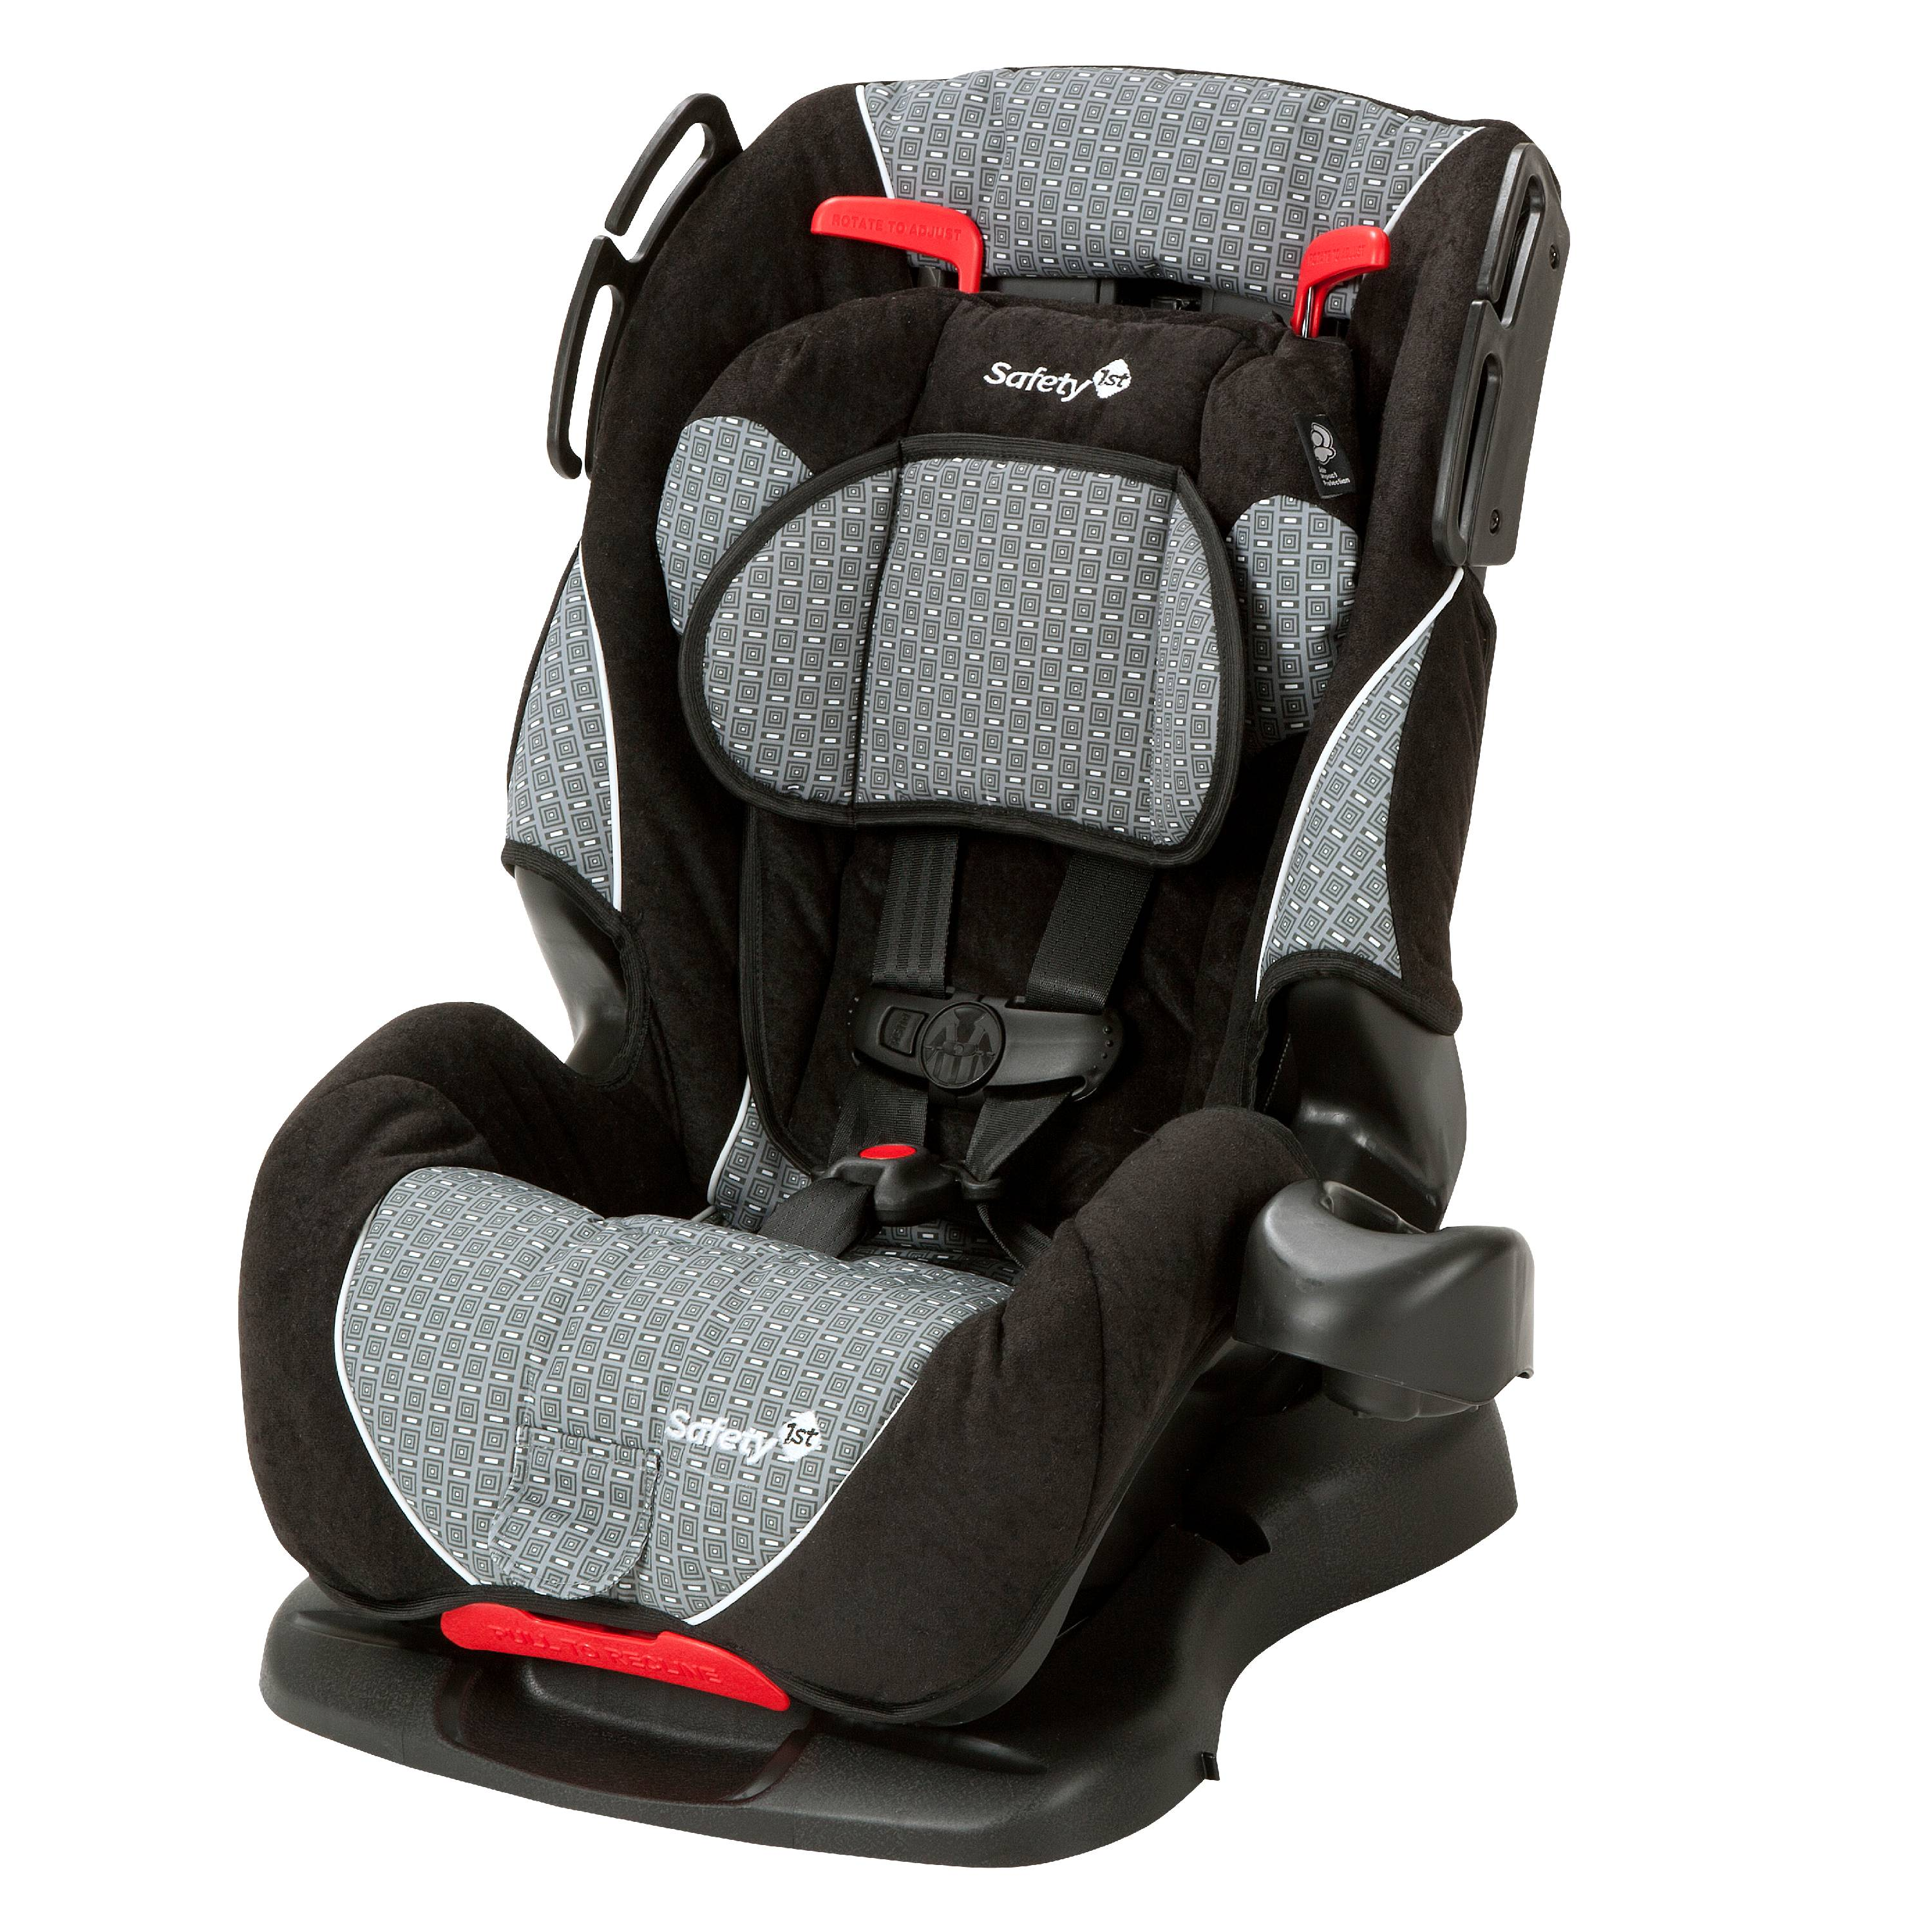 Safety 1st All-in-One Sport Convertible Car Seat, Coleman